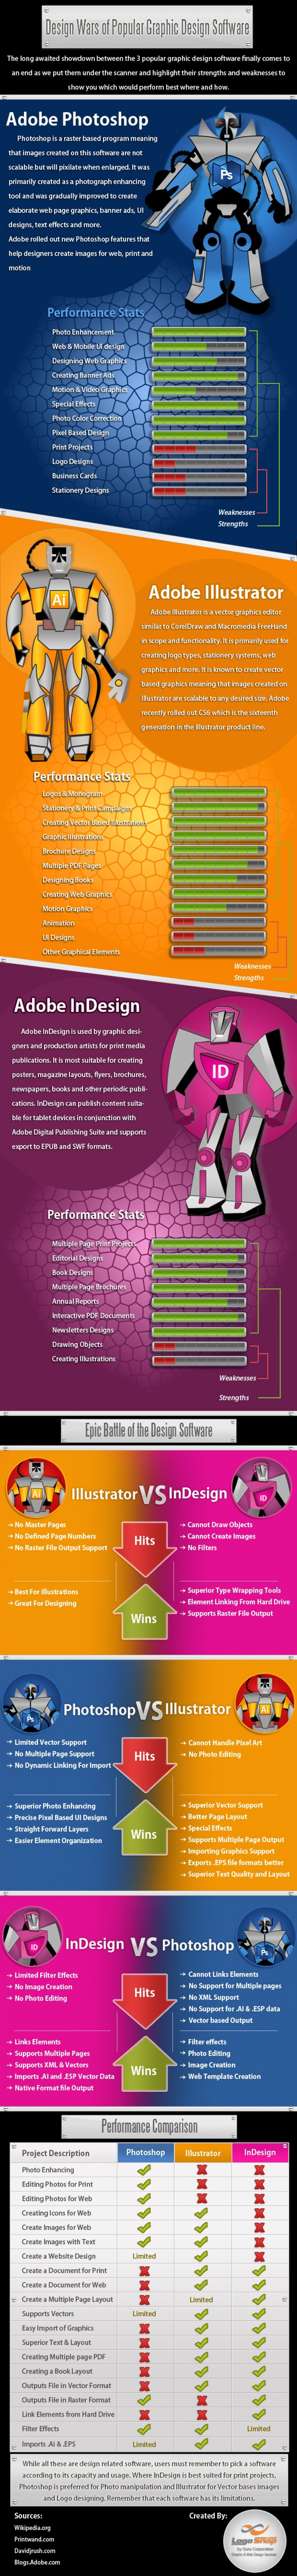 Battle of 3 Popular Graphic Design Software Infographic